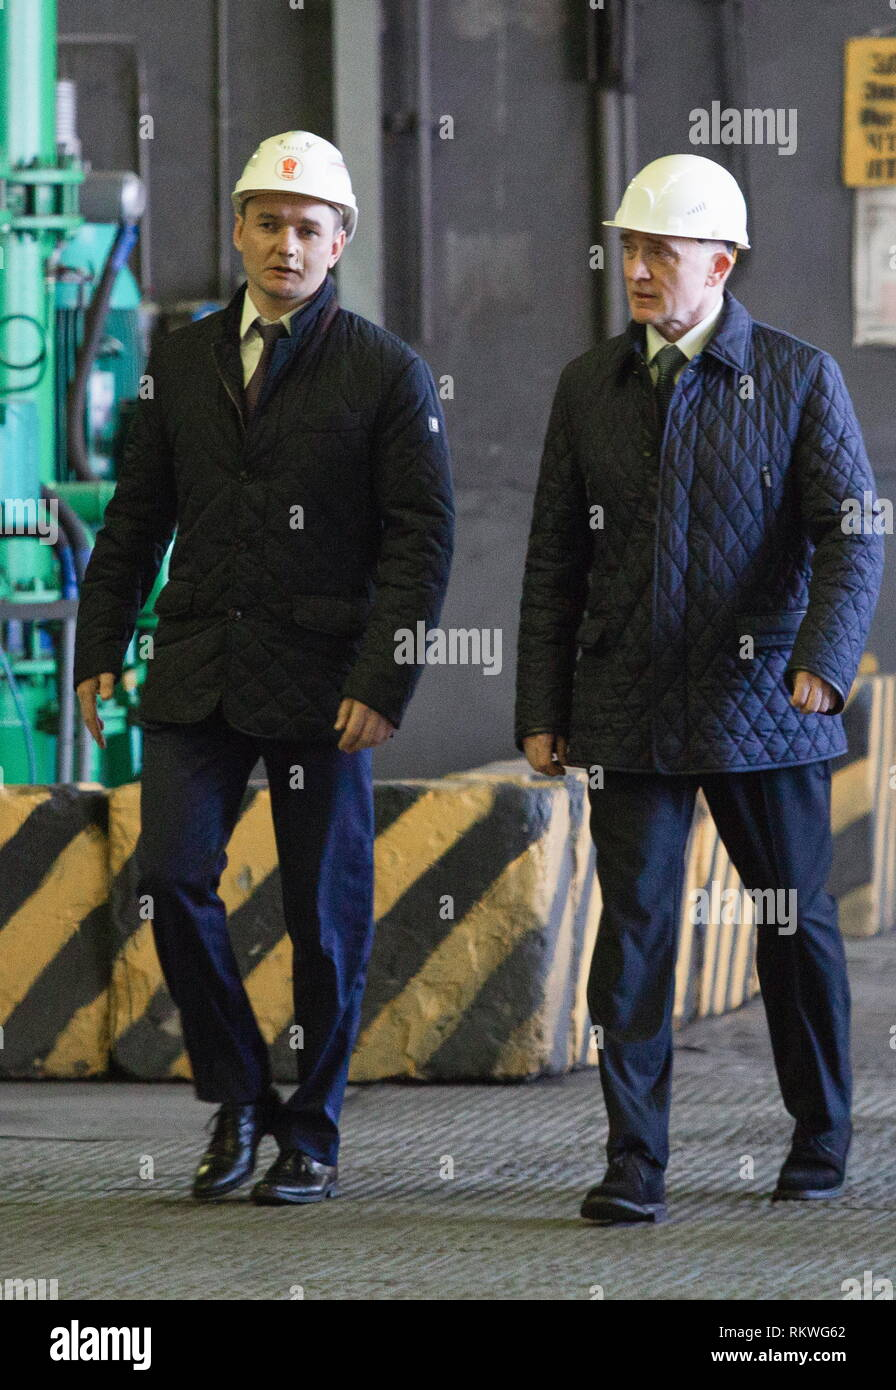 Chelyabinsk, Russia. 12th Feb, 2019. CHELYABINSK, RUSSIA - FEBRUARY 12, 2019: Pavel Izbrekht (L), general director, chairman of the Management Board at Chelyabinsk Zinc Plant, and Chelyabinsk Region Governor Boris Dubrovsky at the Chelyabinsk Zinc Plant. Nail Fattakhov/TASS Credit: ITAR-TASS News Agency/Alamy Live News - Stock Image